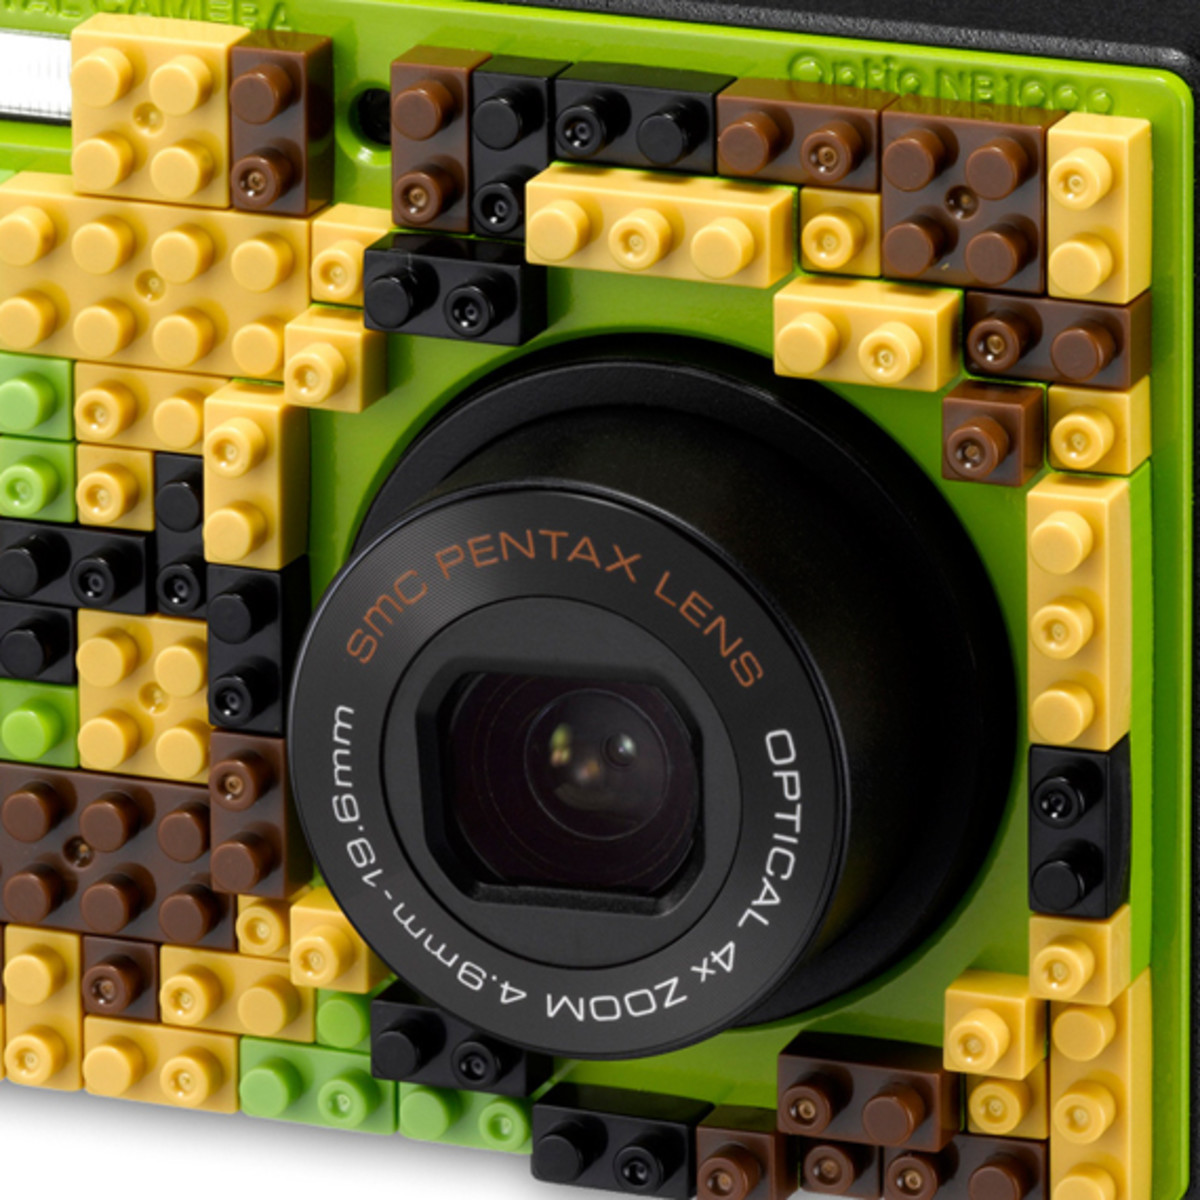 nanoblock x PENTAX Optio NB1000 Digital Camera | Available